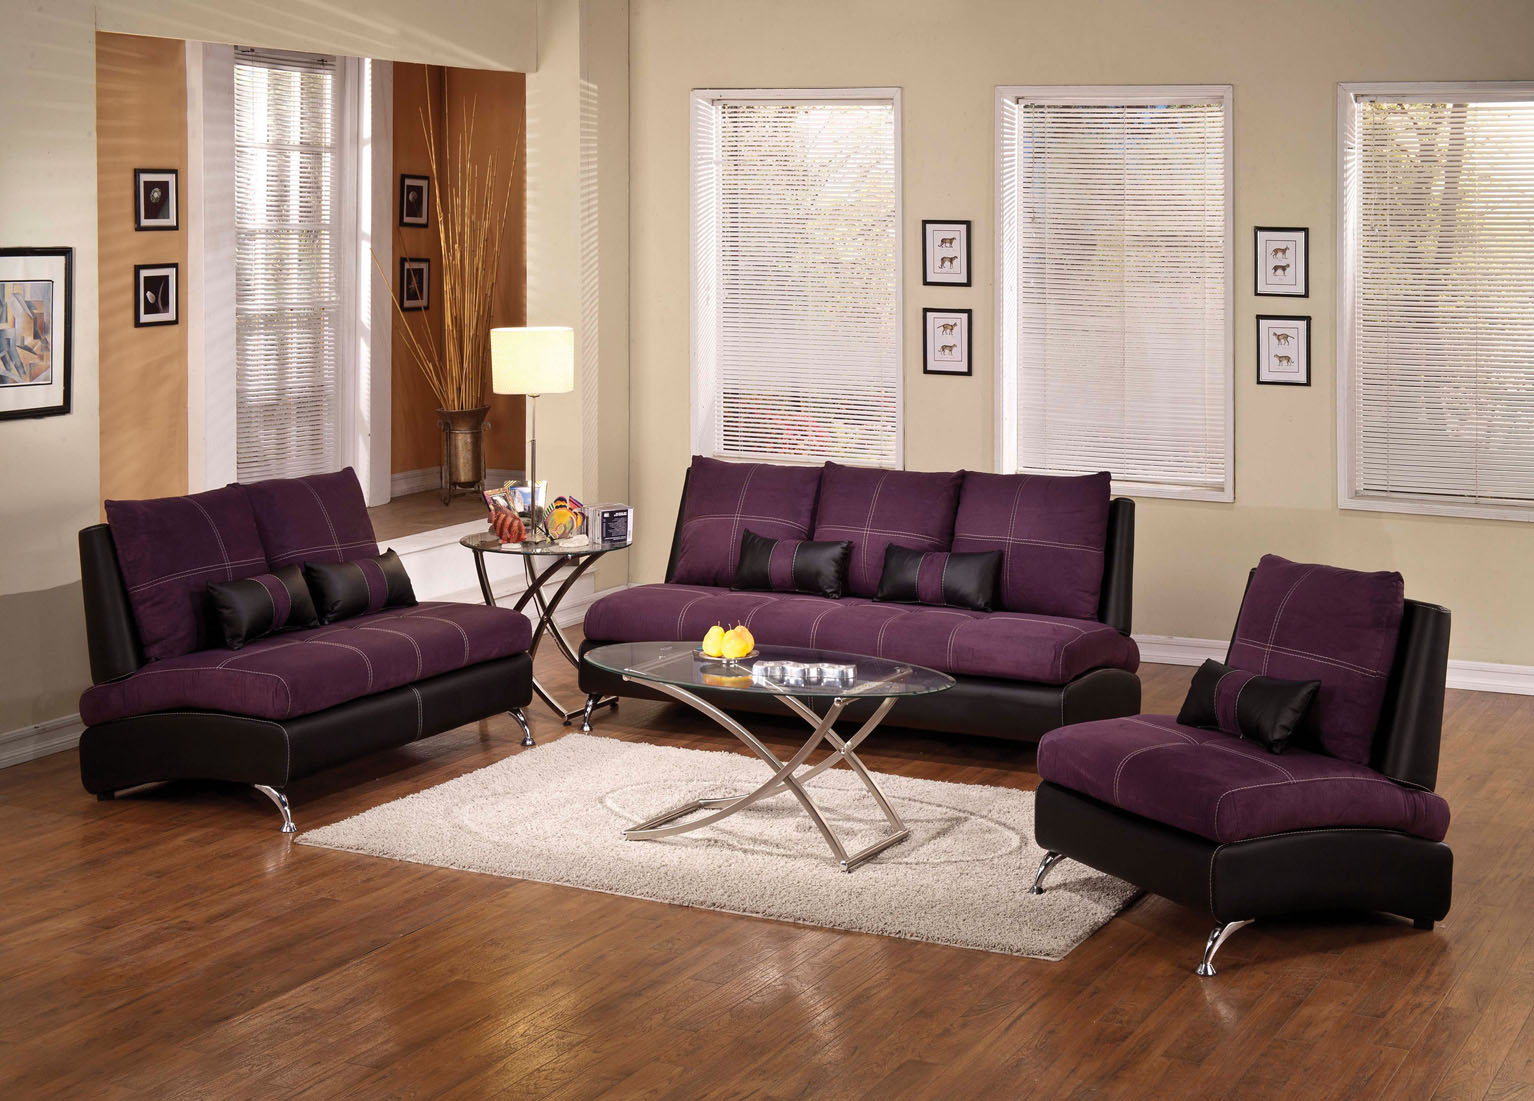 suede living room furniture media center 2 piece purple sofa set umf51750 jpg